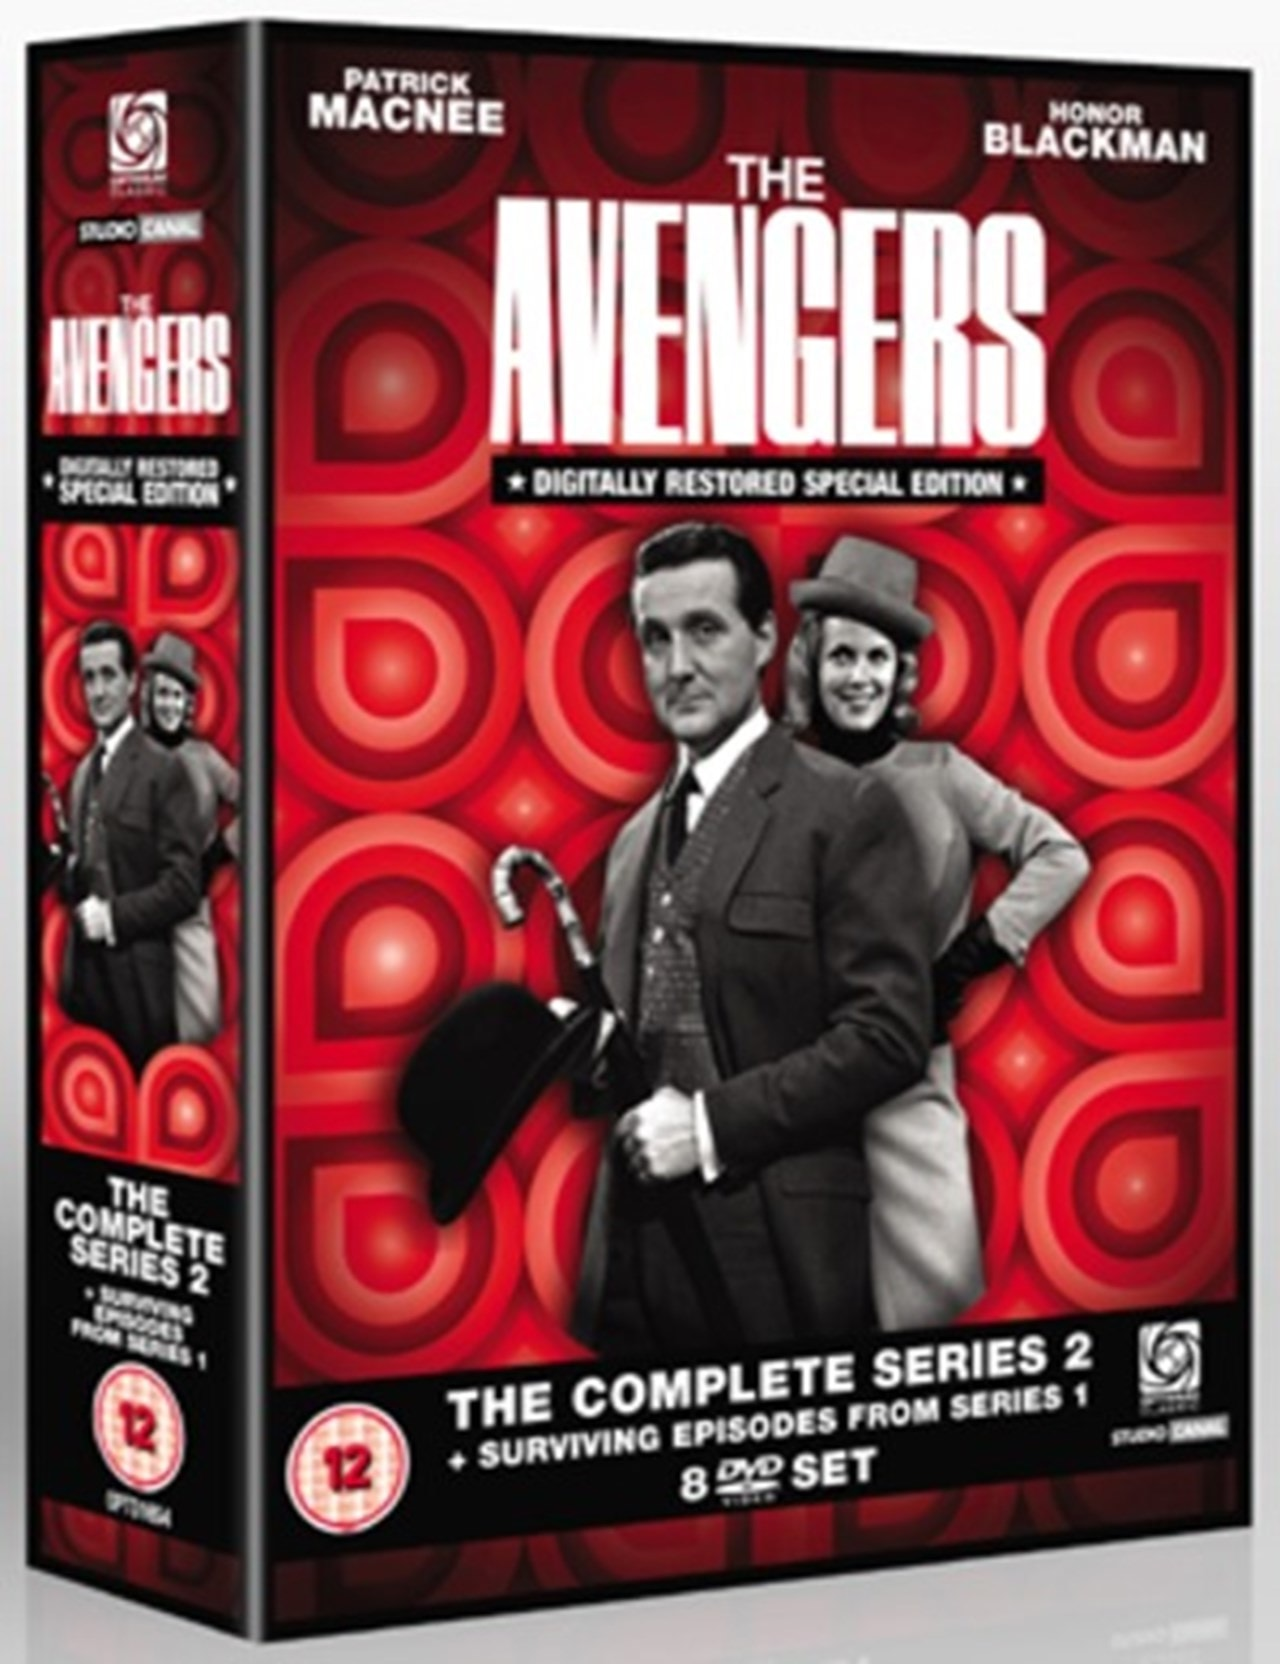 The Avengers: The Complete Series 2 and Surviving Episodes... - 1